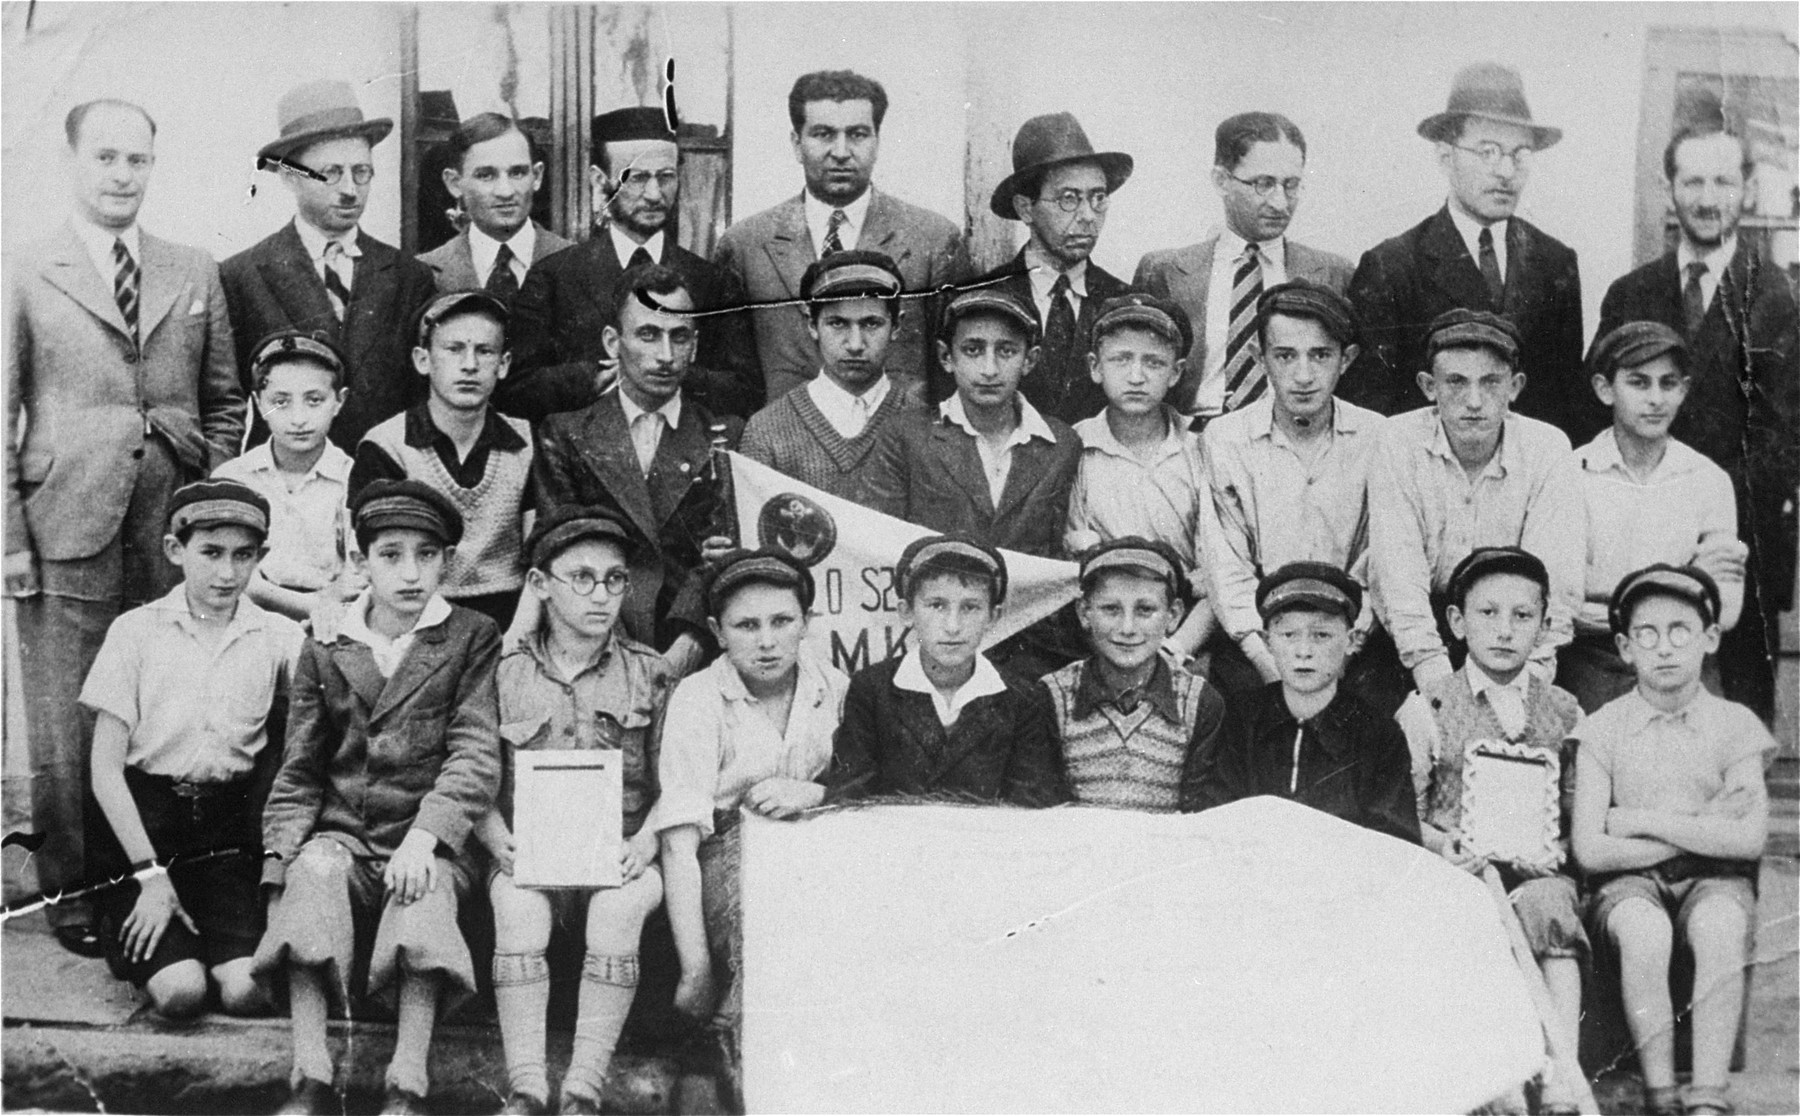 Group portrait of students and teachers of the Yavne Jewish religious elementary school for boys in Bedzin.   Among those pictured are: Motek Rechnic (second row from the front, third from the right) and Hesiek Zvi Rechnic (second row from the front, fifth from the right). Both of these children were from Dabrowa Gornicza.